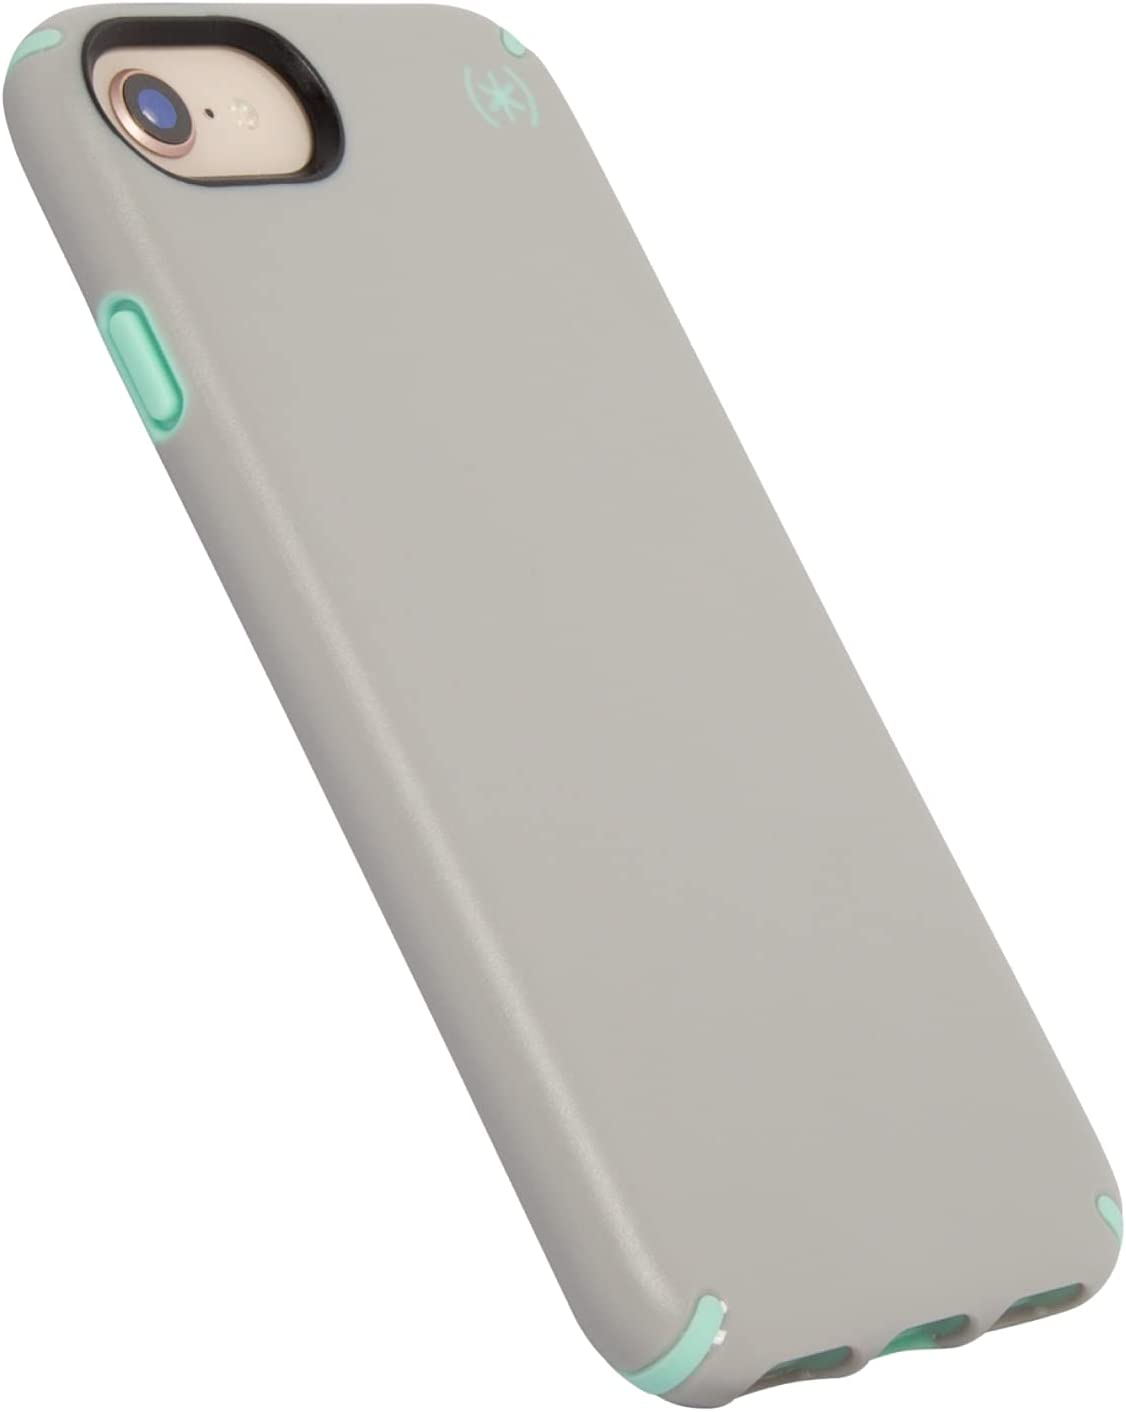 Speck Products Protective Skin Cover for iPhone SE 2020 Case/iPhone 7 Case (Also Fits iPhone 6 and iPhone 6S) - (Sand Grey/SURF Teal)